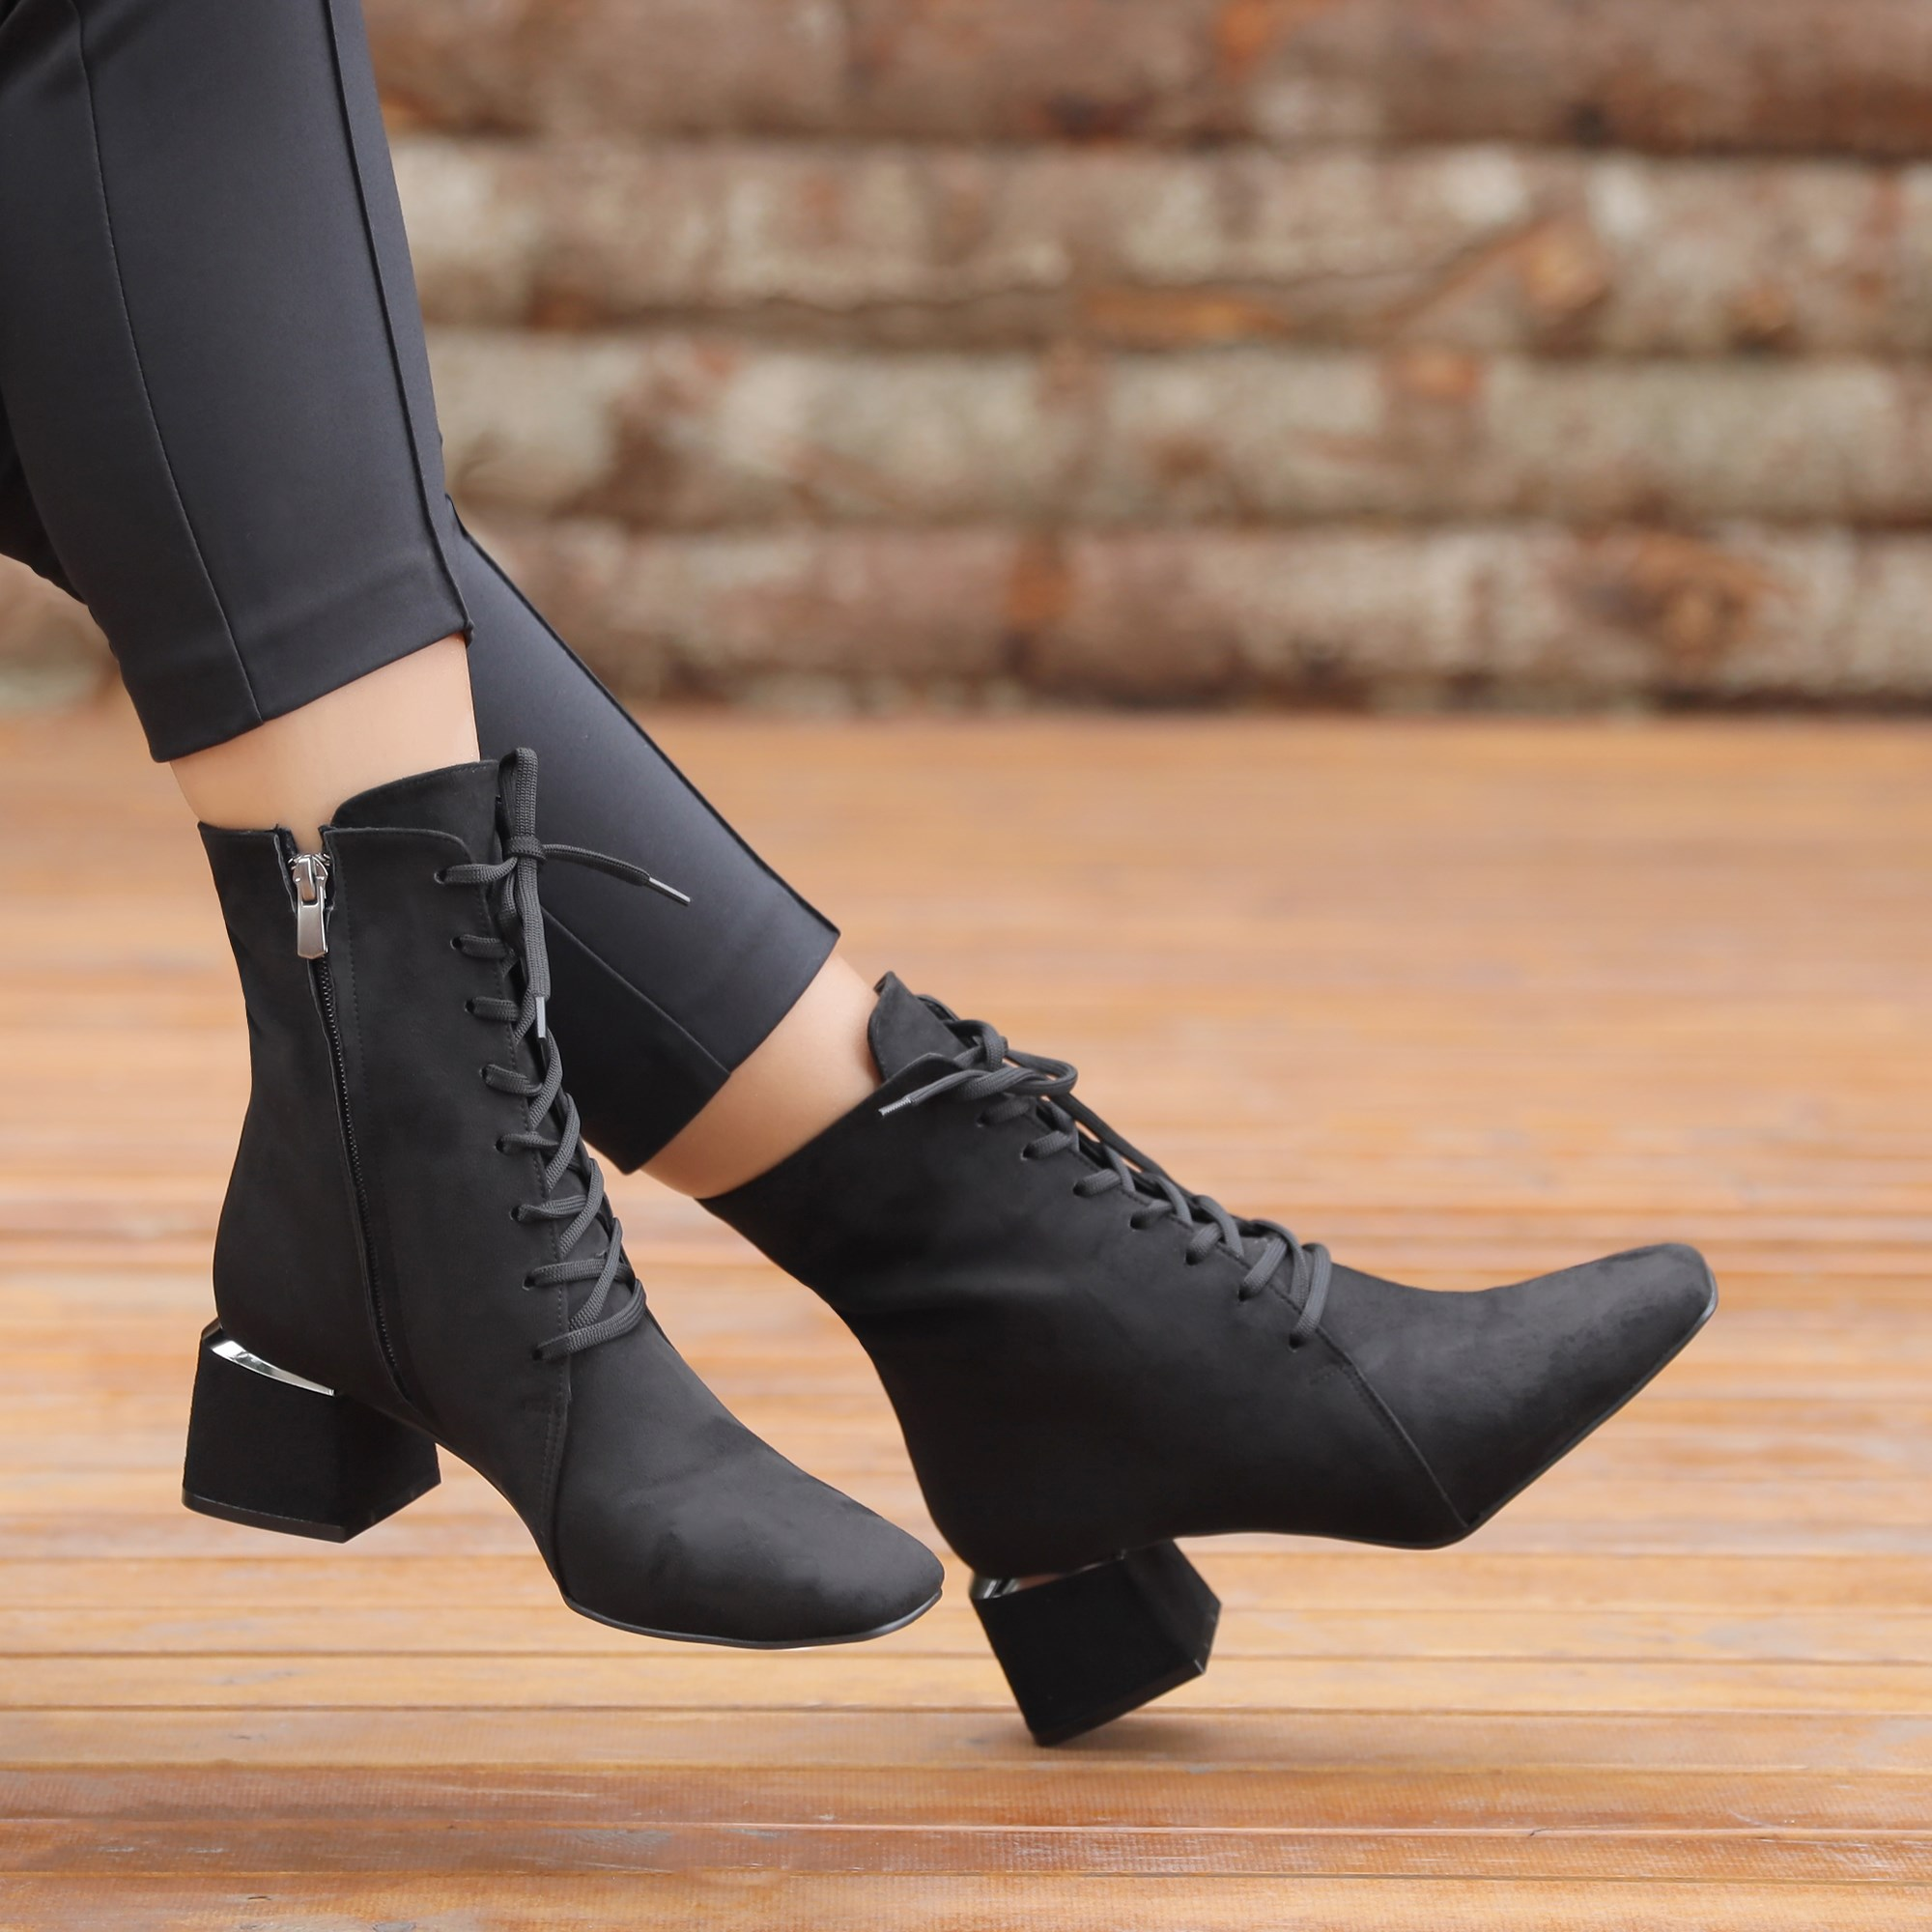 Labrada Suede Black Thick Heeled Lace-up Boots